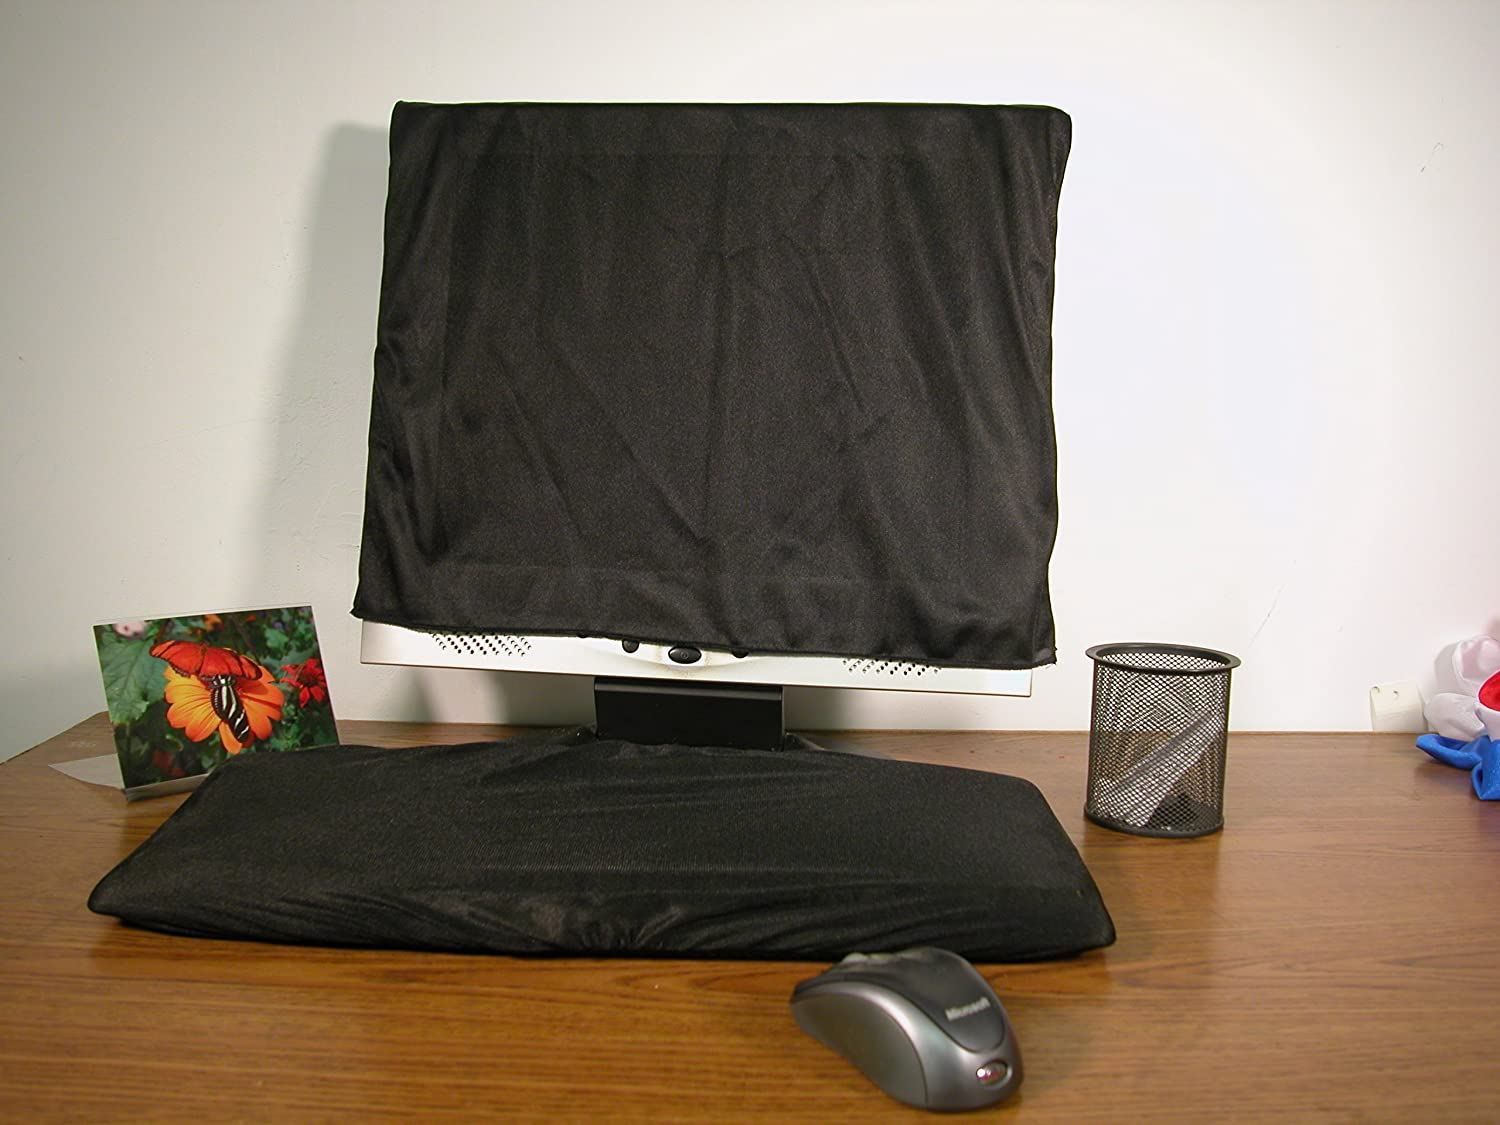 Keyboard and Monitor Dust Cover - Black (22) L.P. Distributing